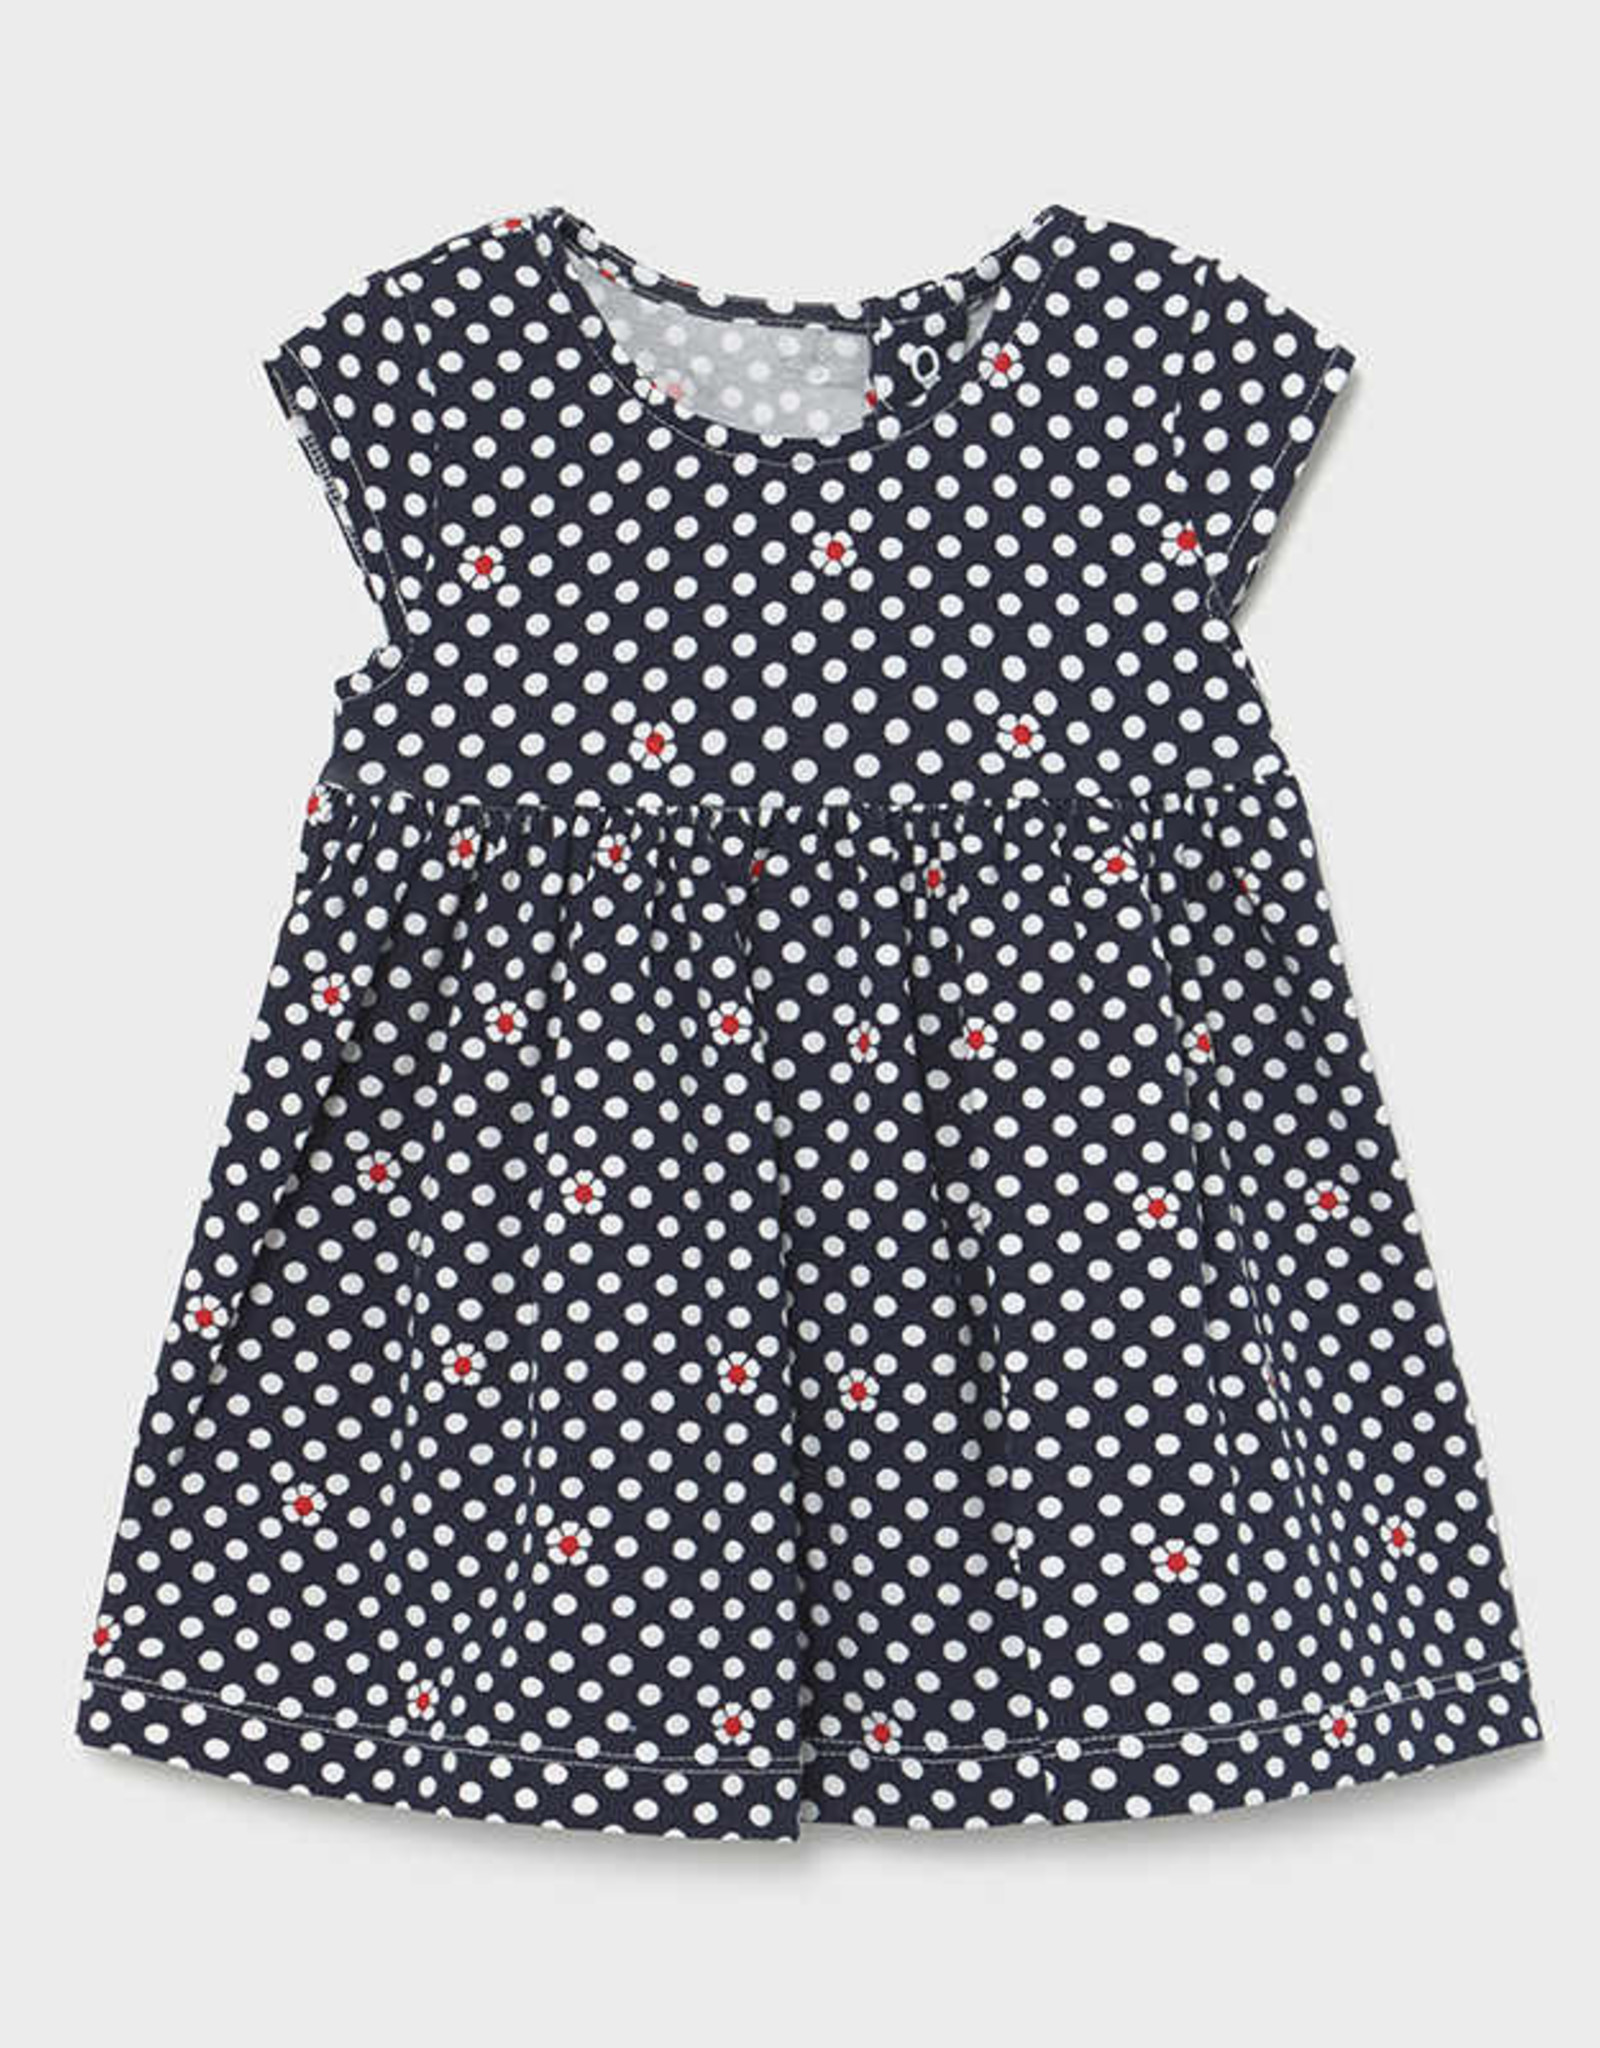 Mayoral Infant Girls Navy Dots and Daisies Knit Dress